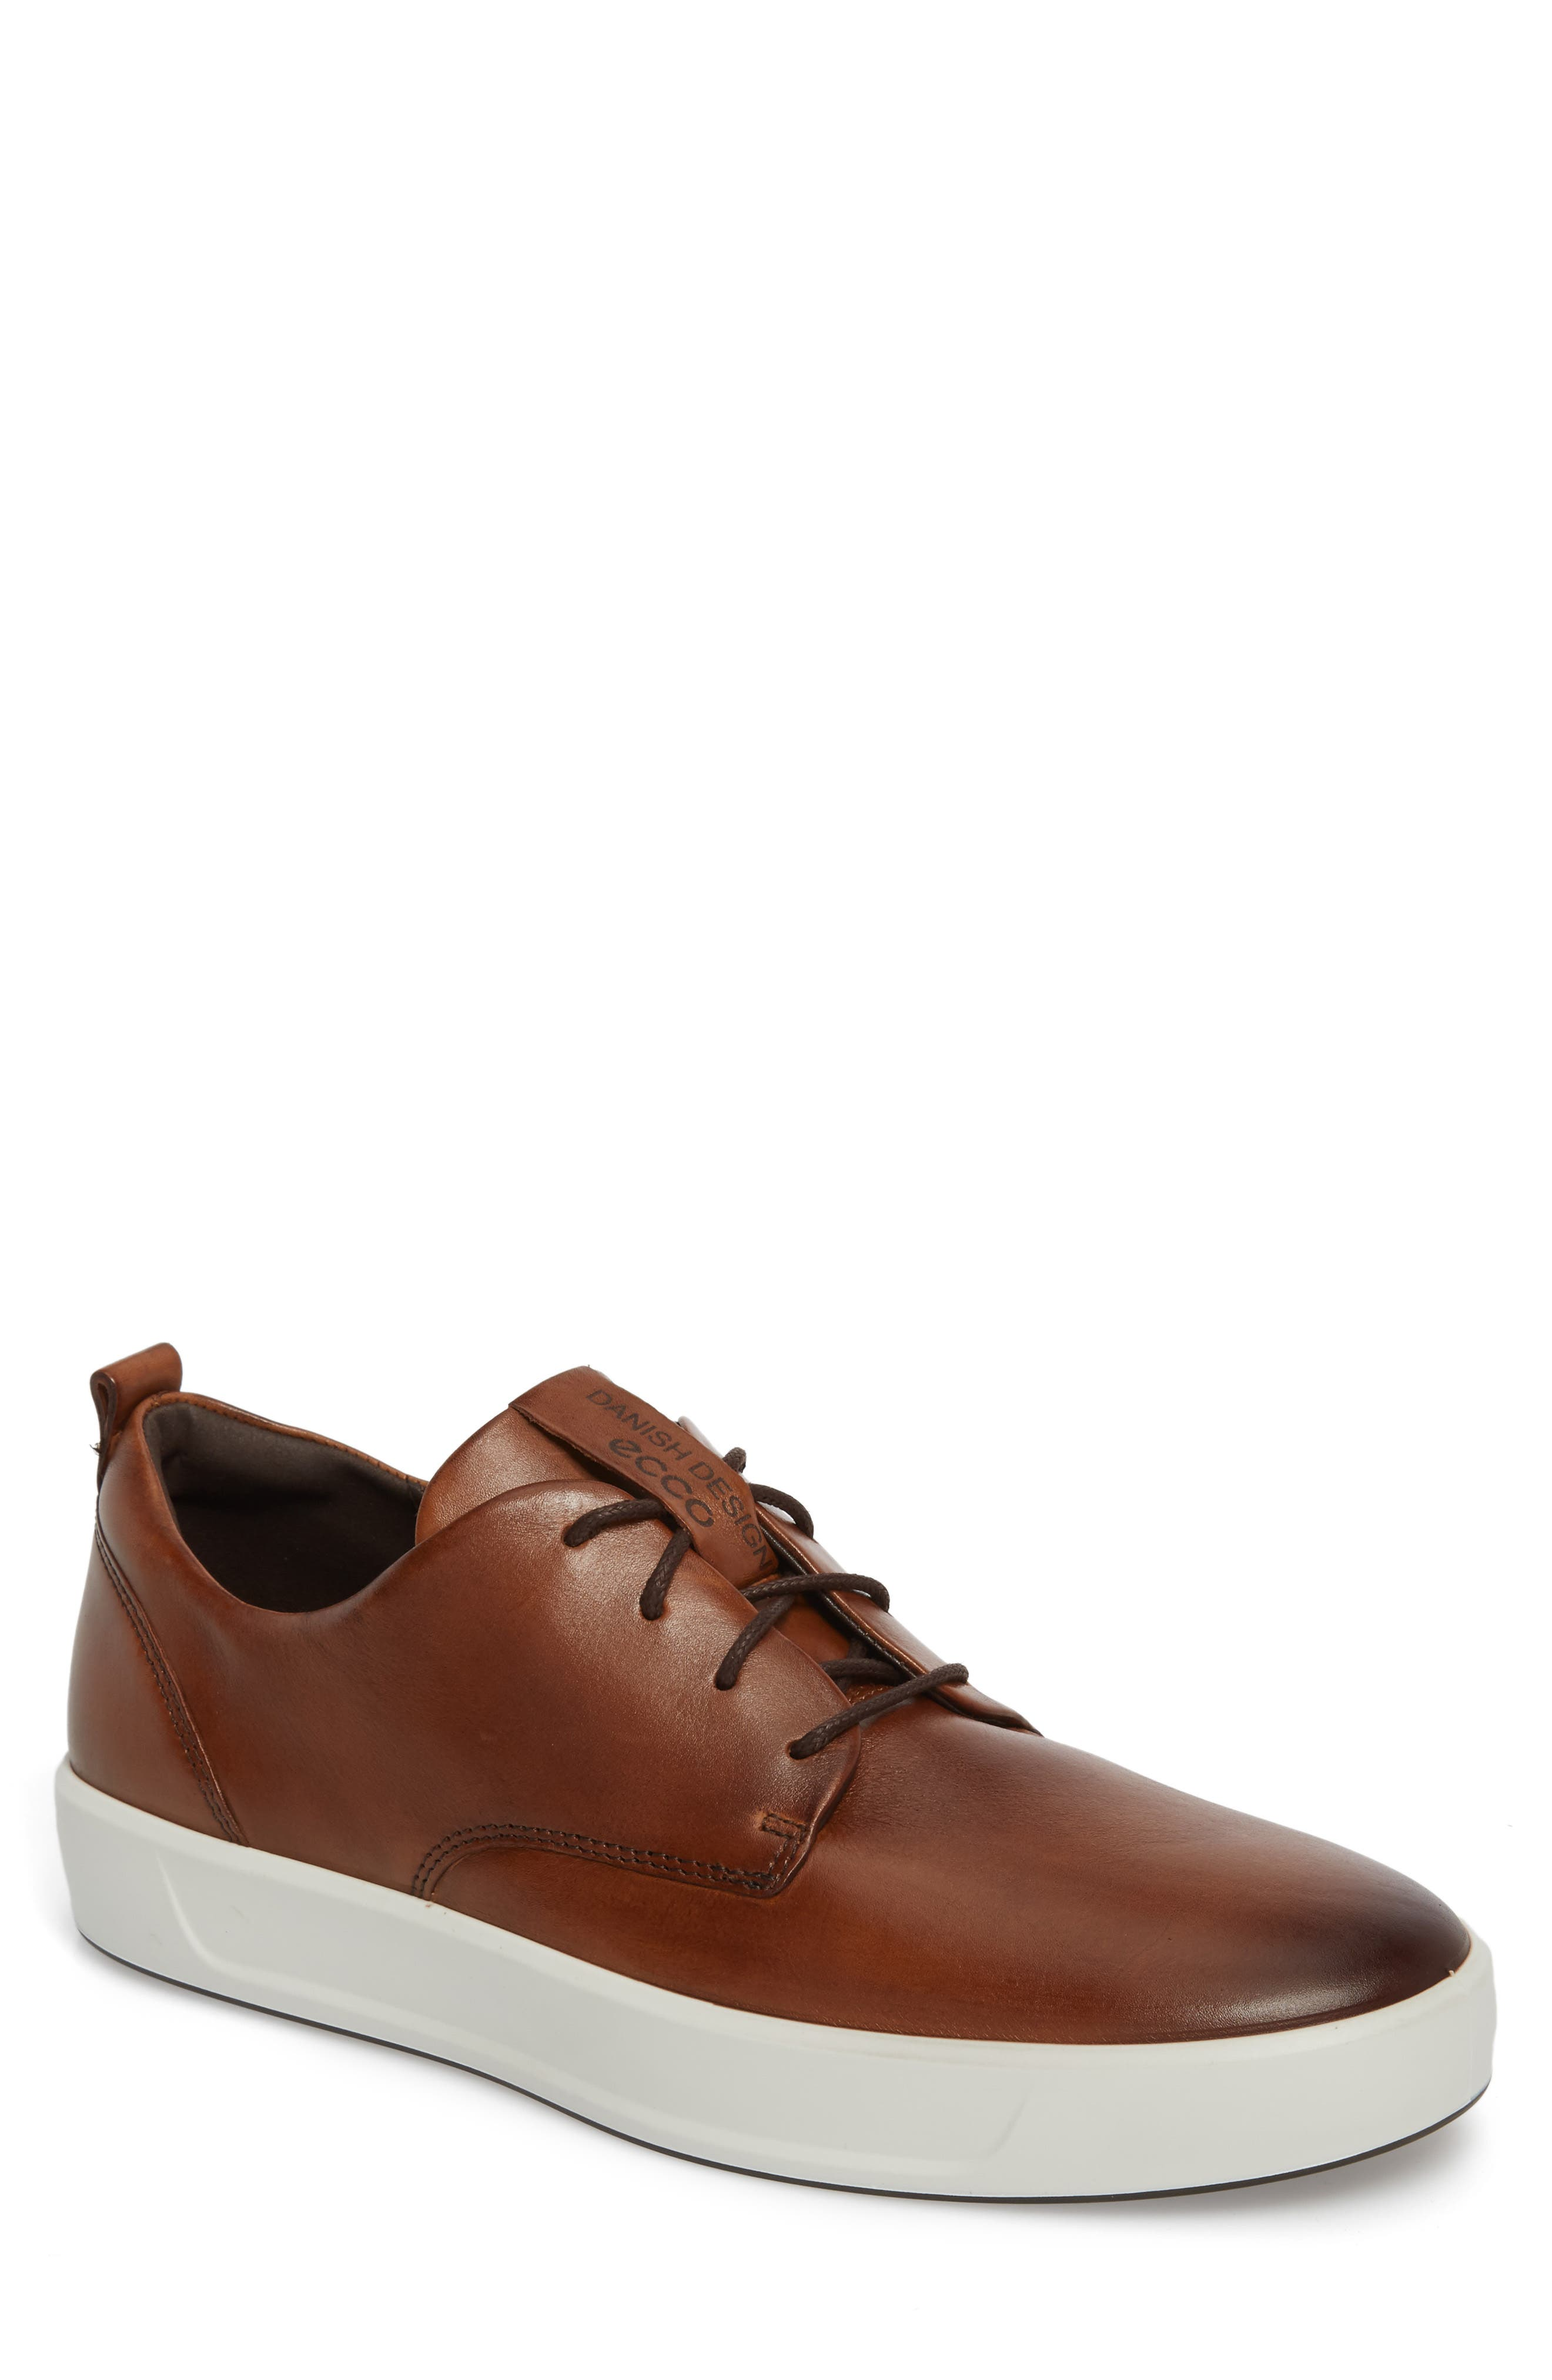 Soft 8 Street Sneaker,                         Main,                         color, LION LEATHER